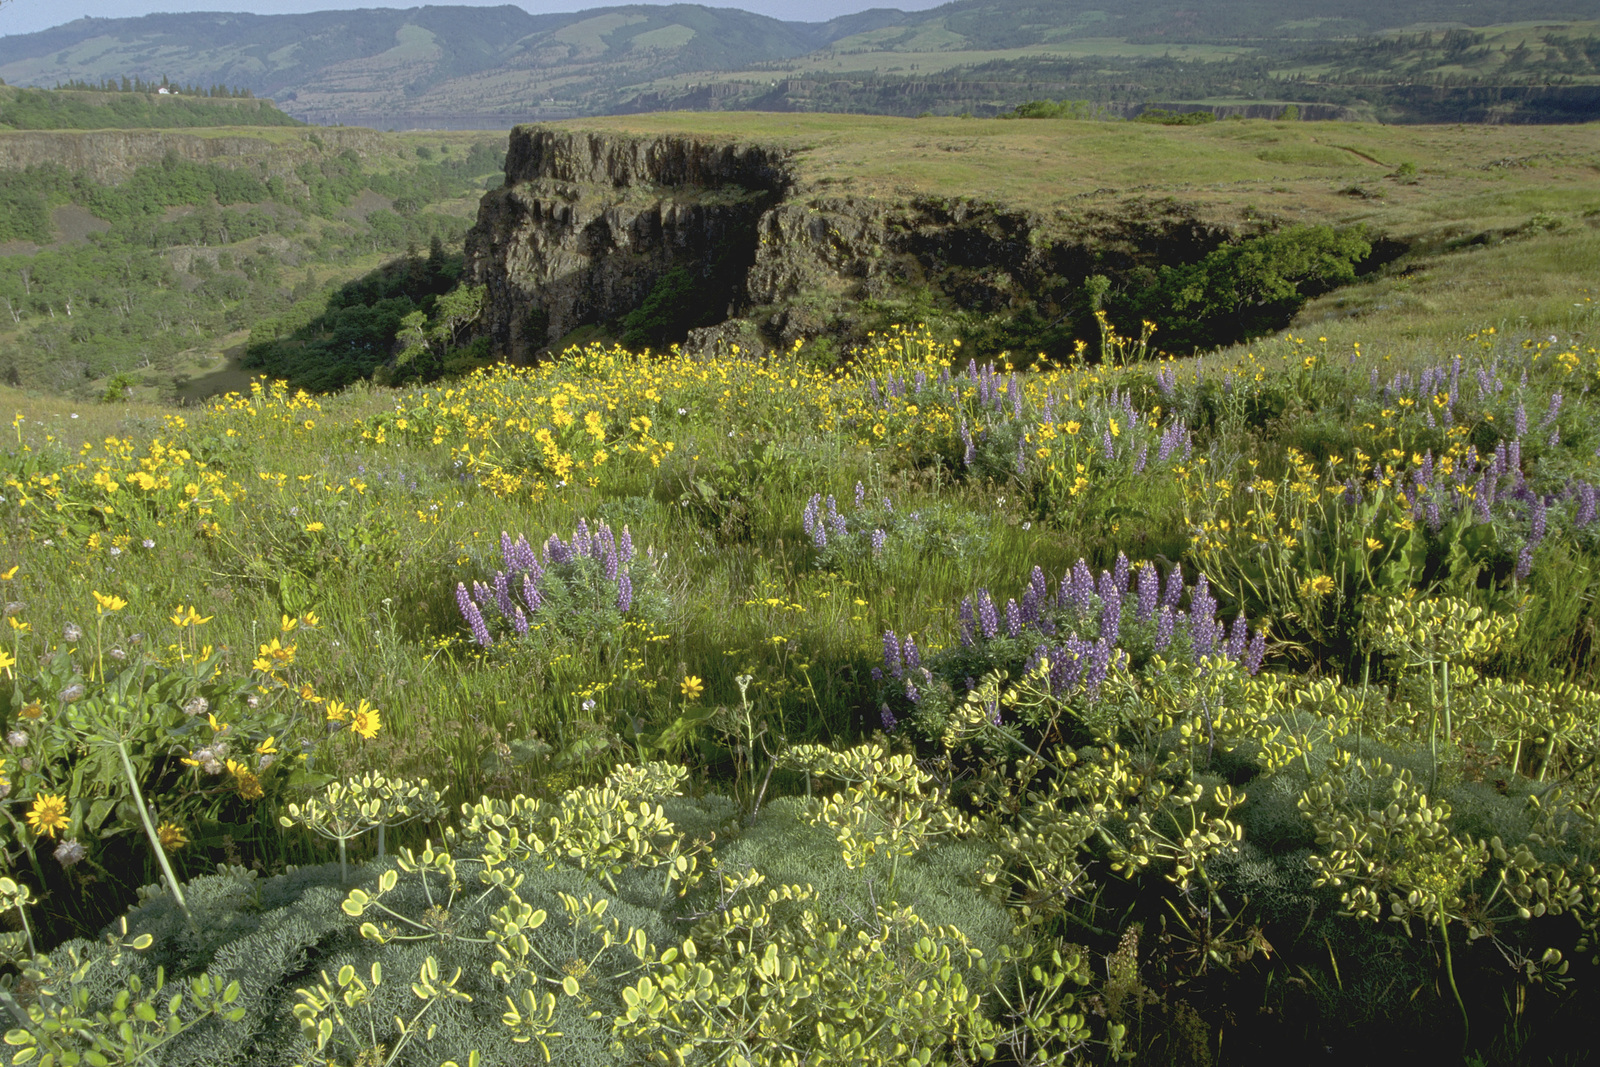 The Conservancy's Tom McCall Preserve at the Columbia River Gorge in Oregon. Photo © Alan D. St. John.